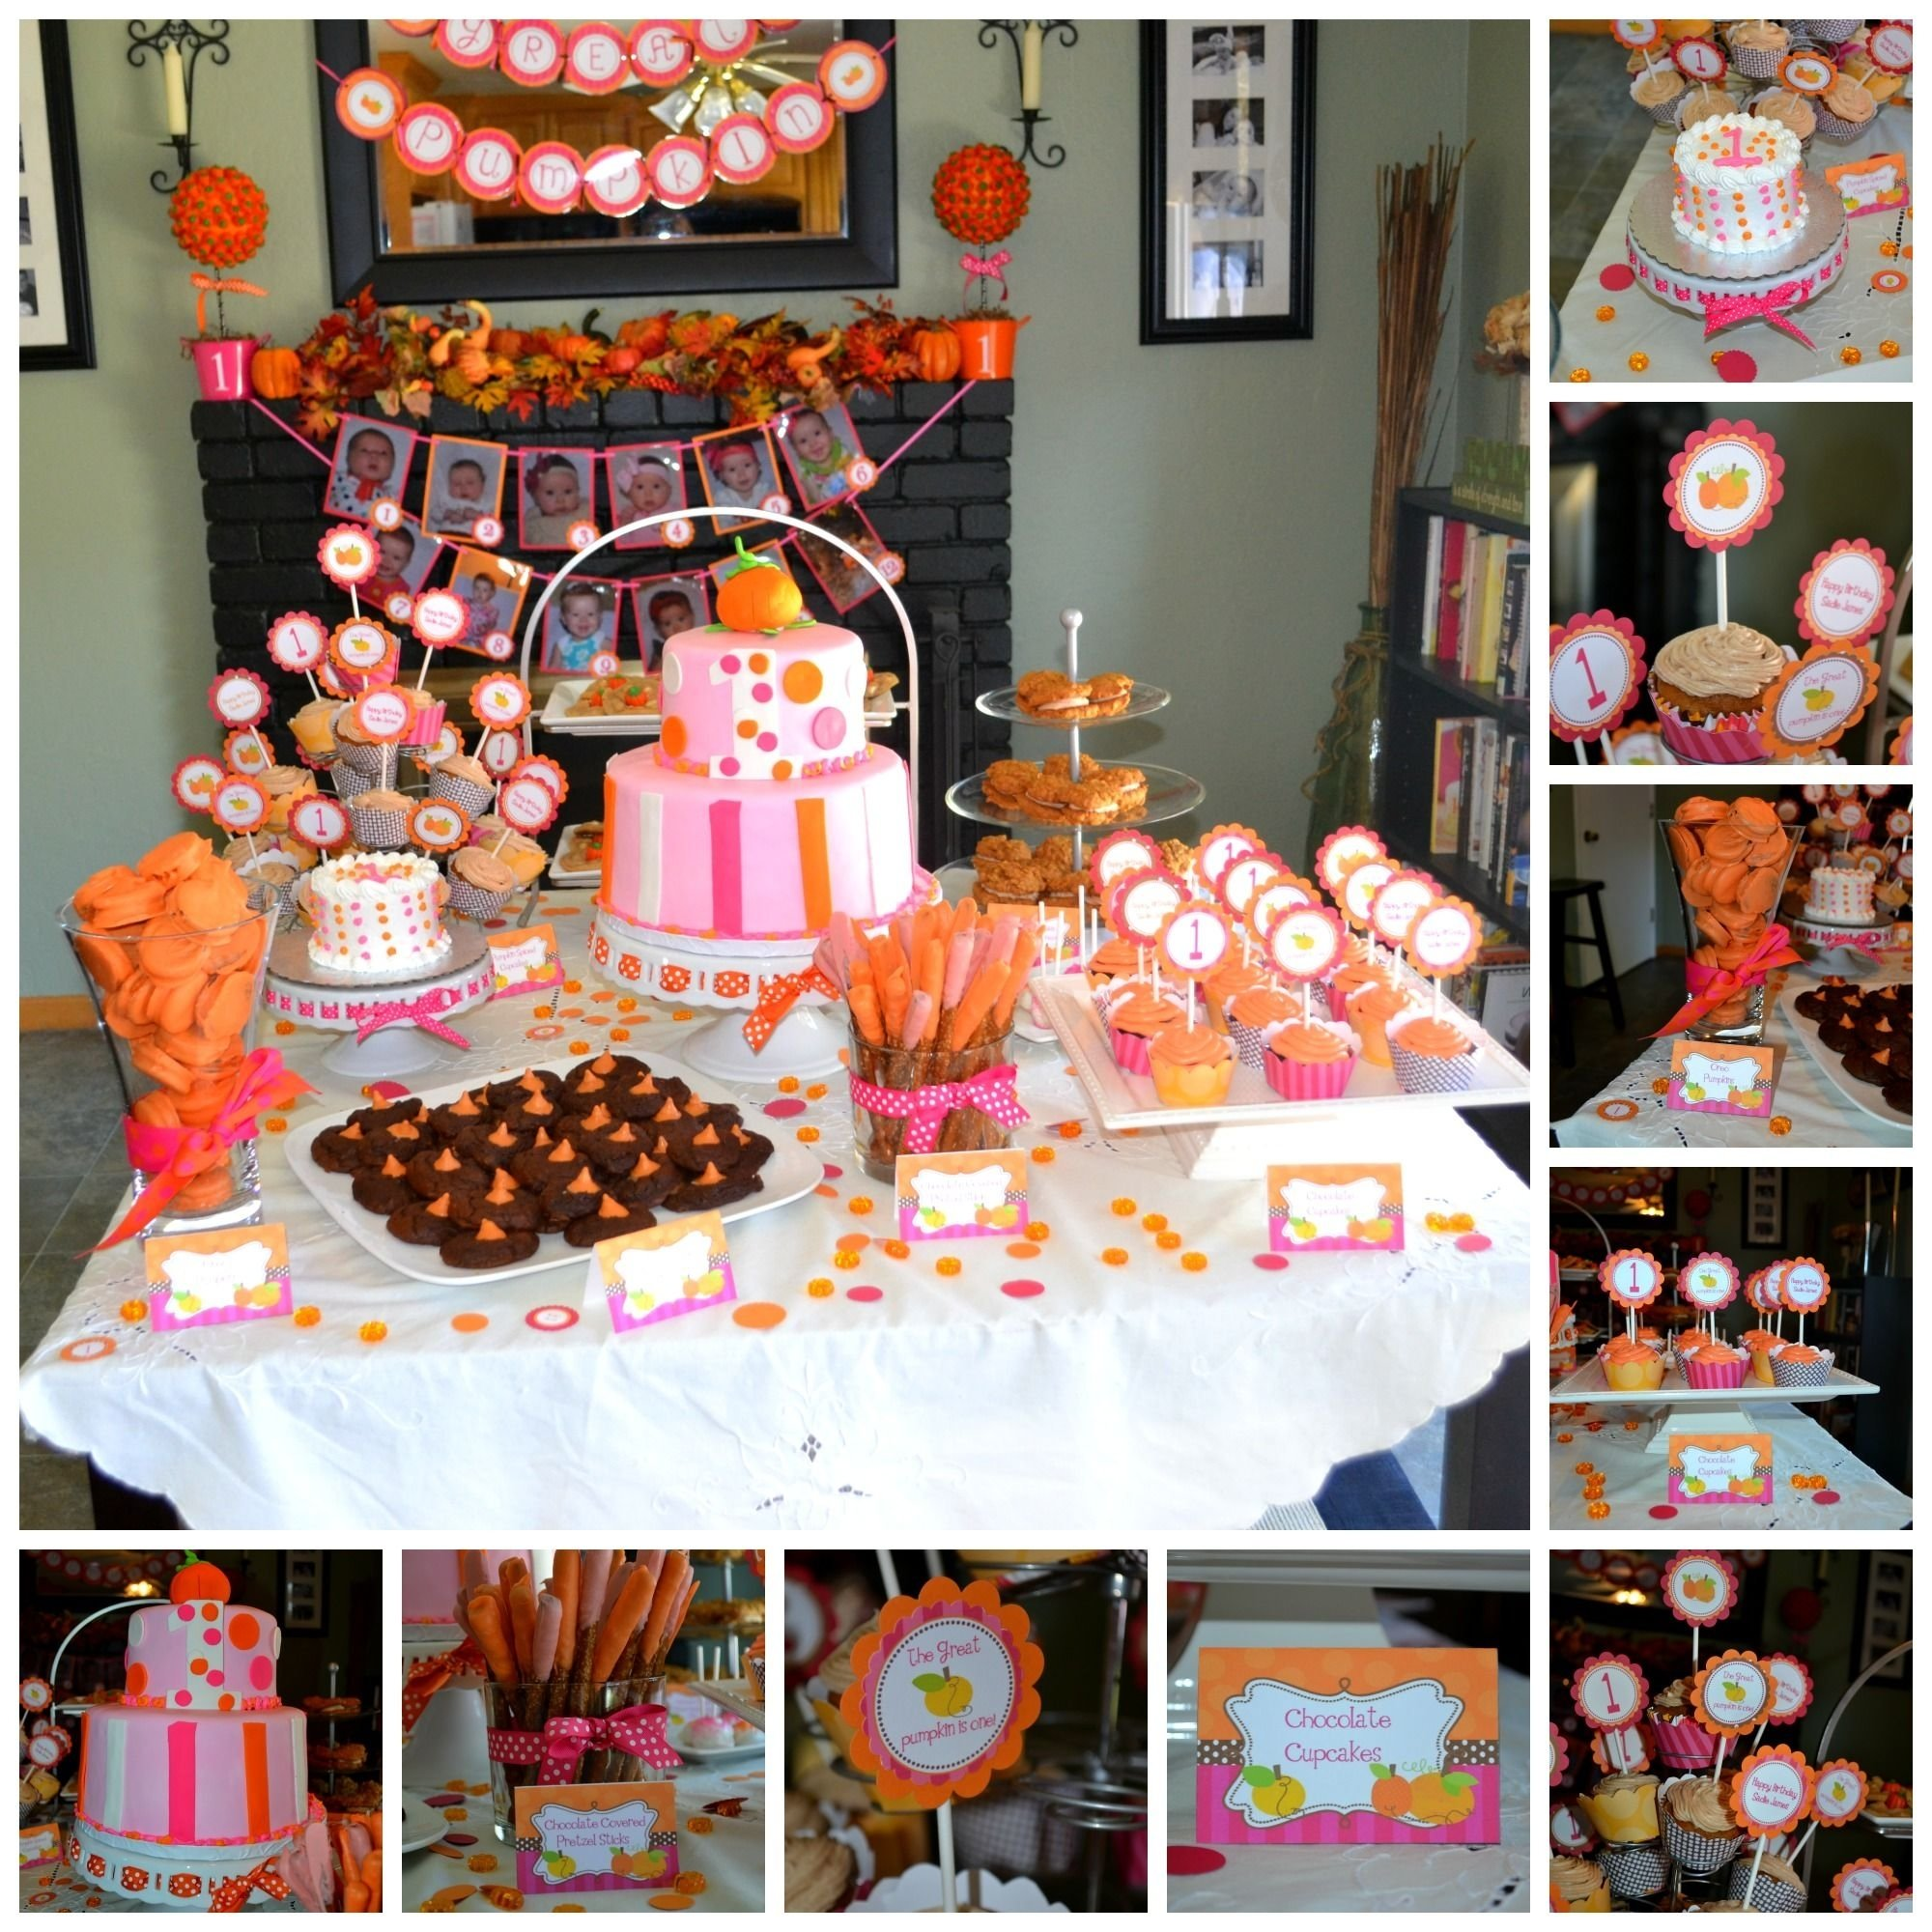 10 Stylish Fall First Birthday Party Ideas pumpkin birthday dessert table party ideas pinterest birthday